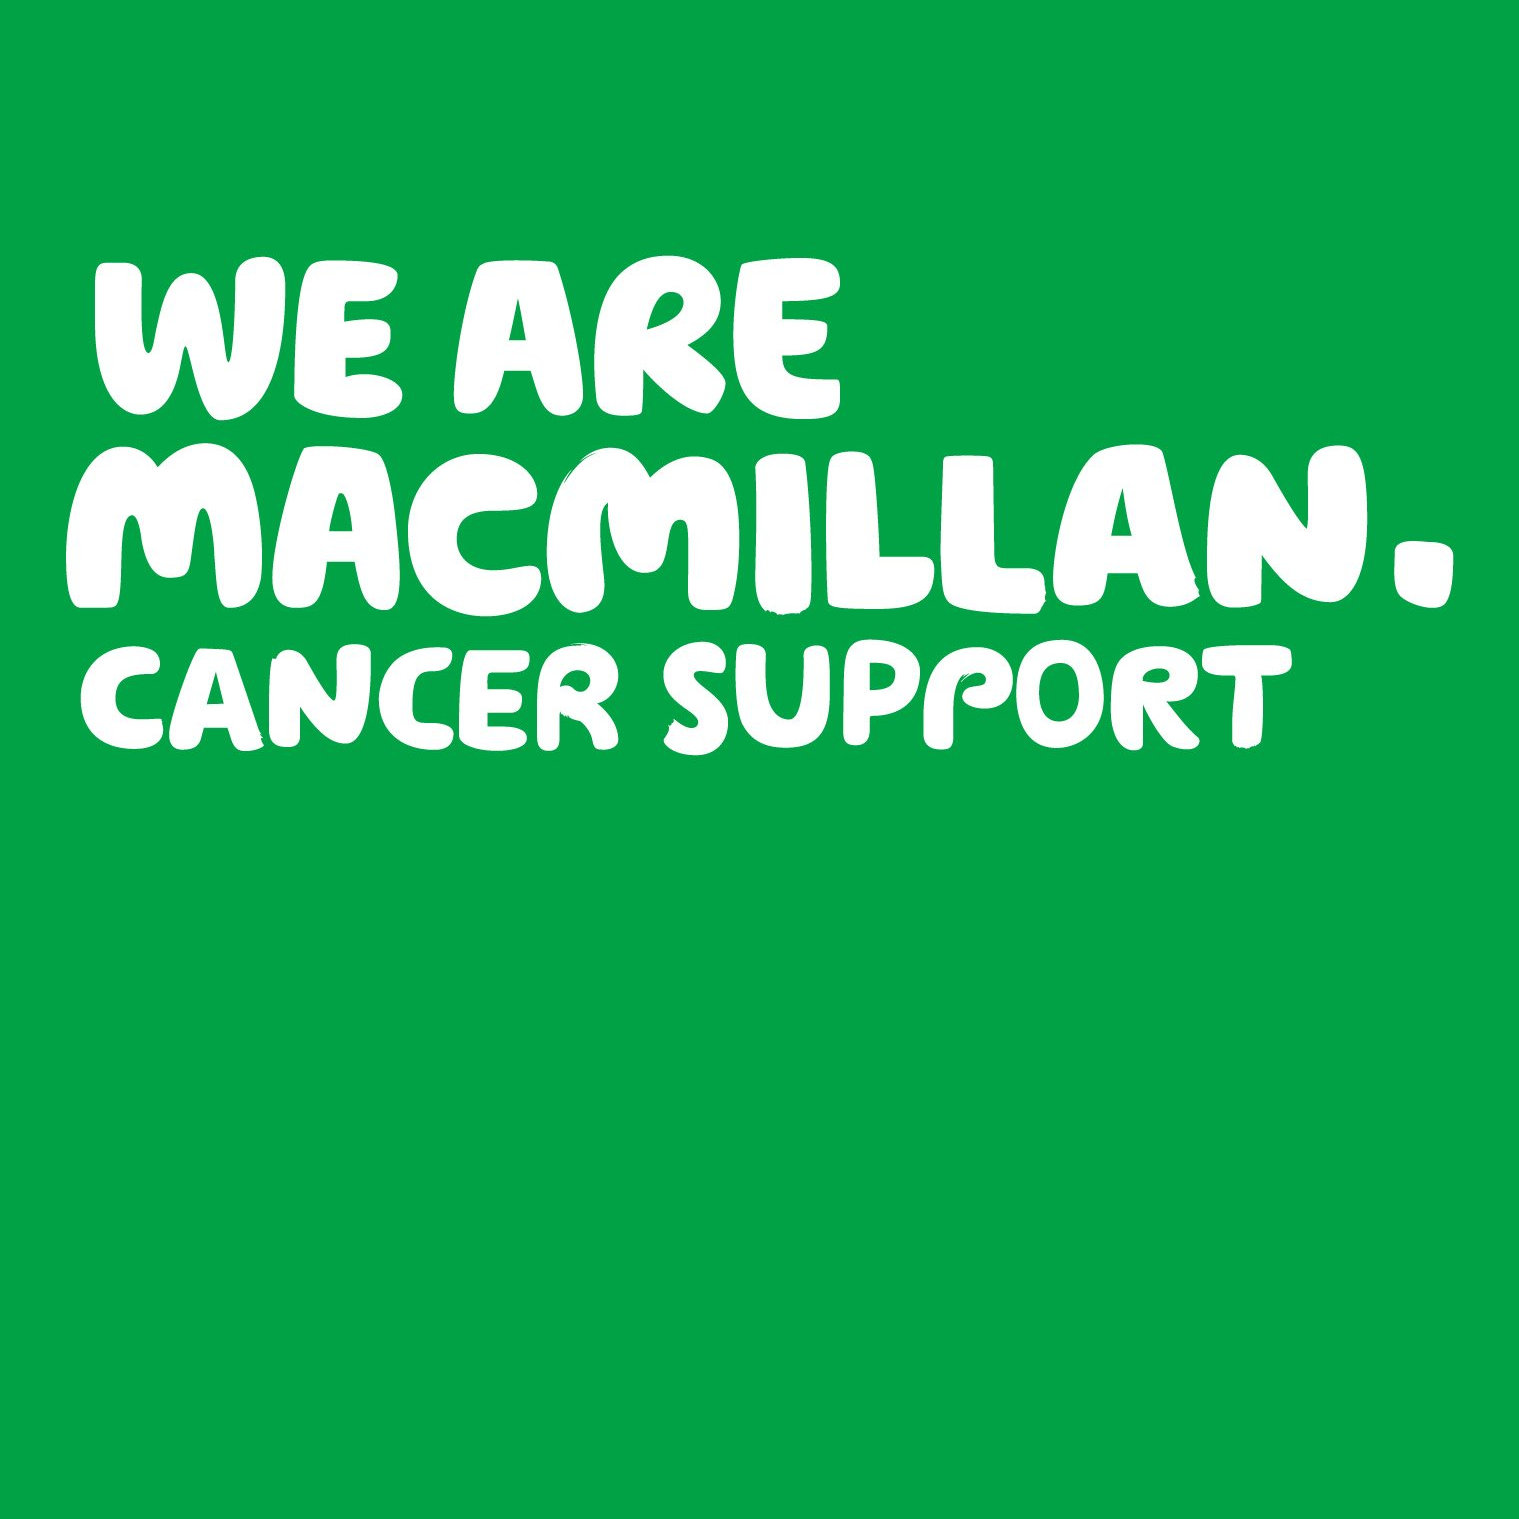 Visit MacMillan Cancer Support